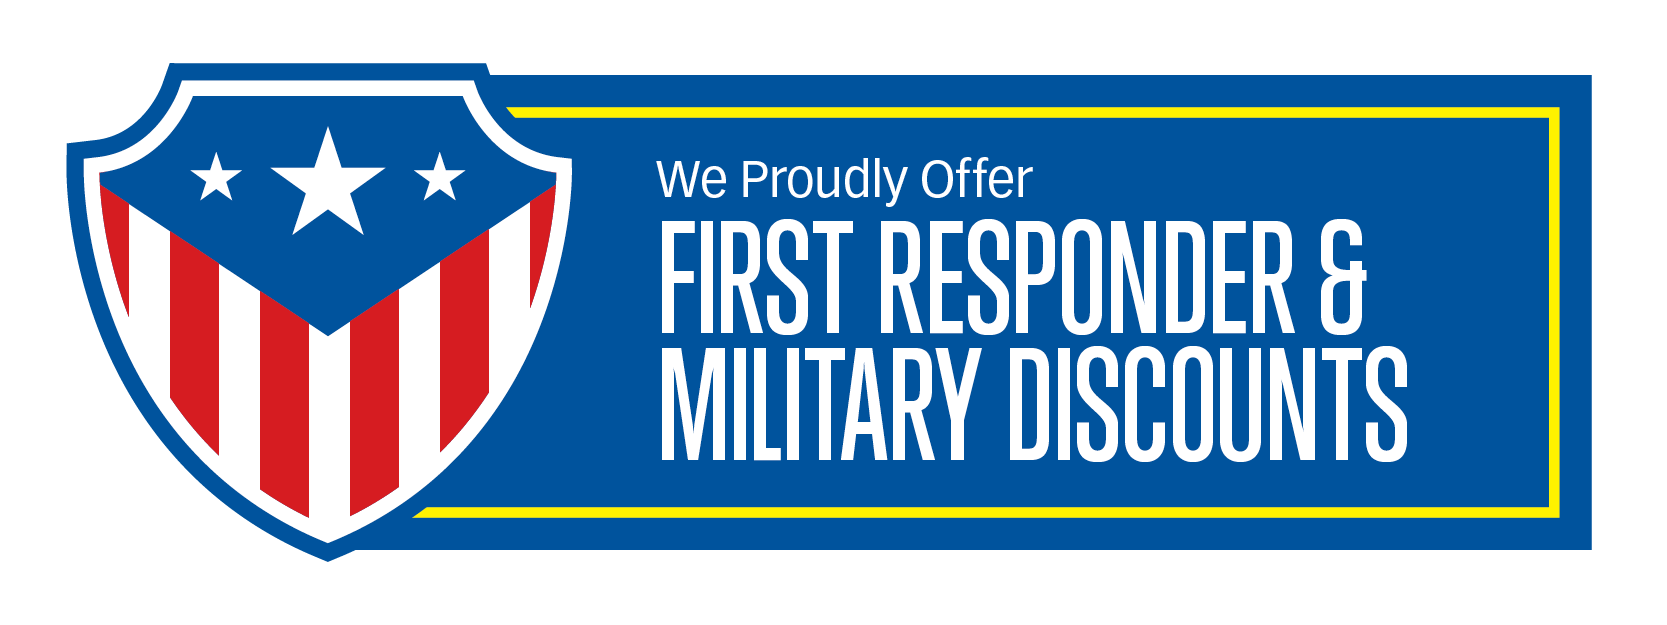 We Proudly Offer First Responder & Military Discounts